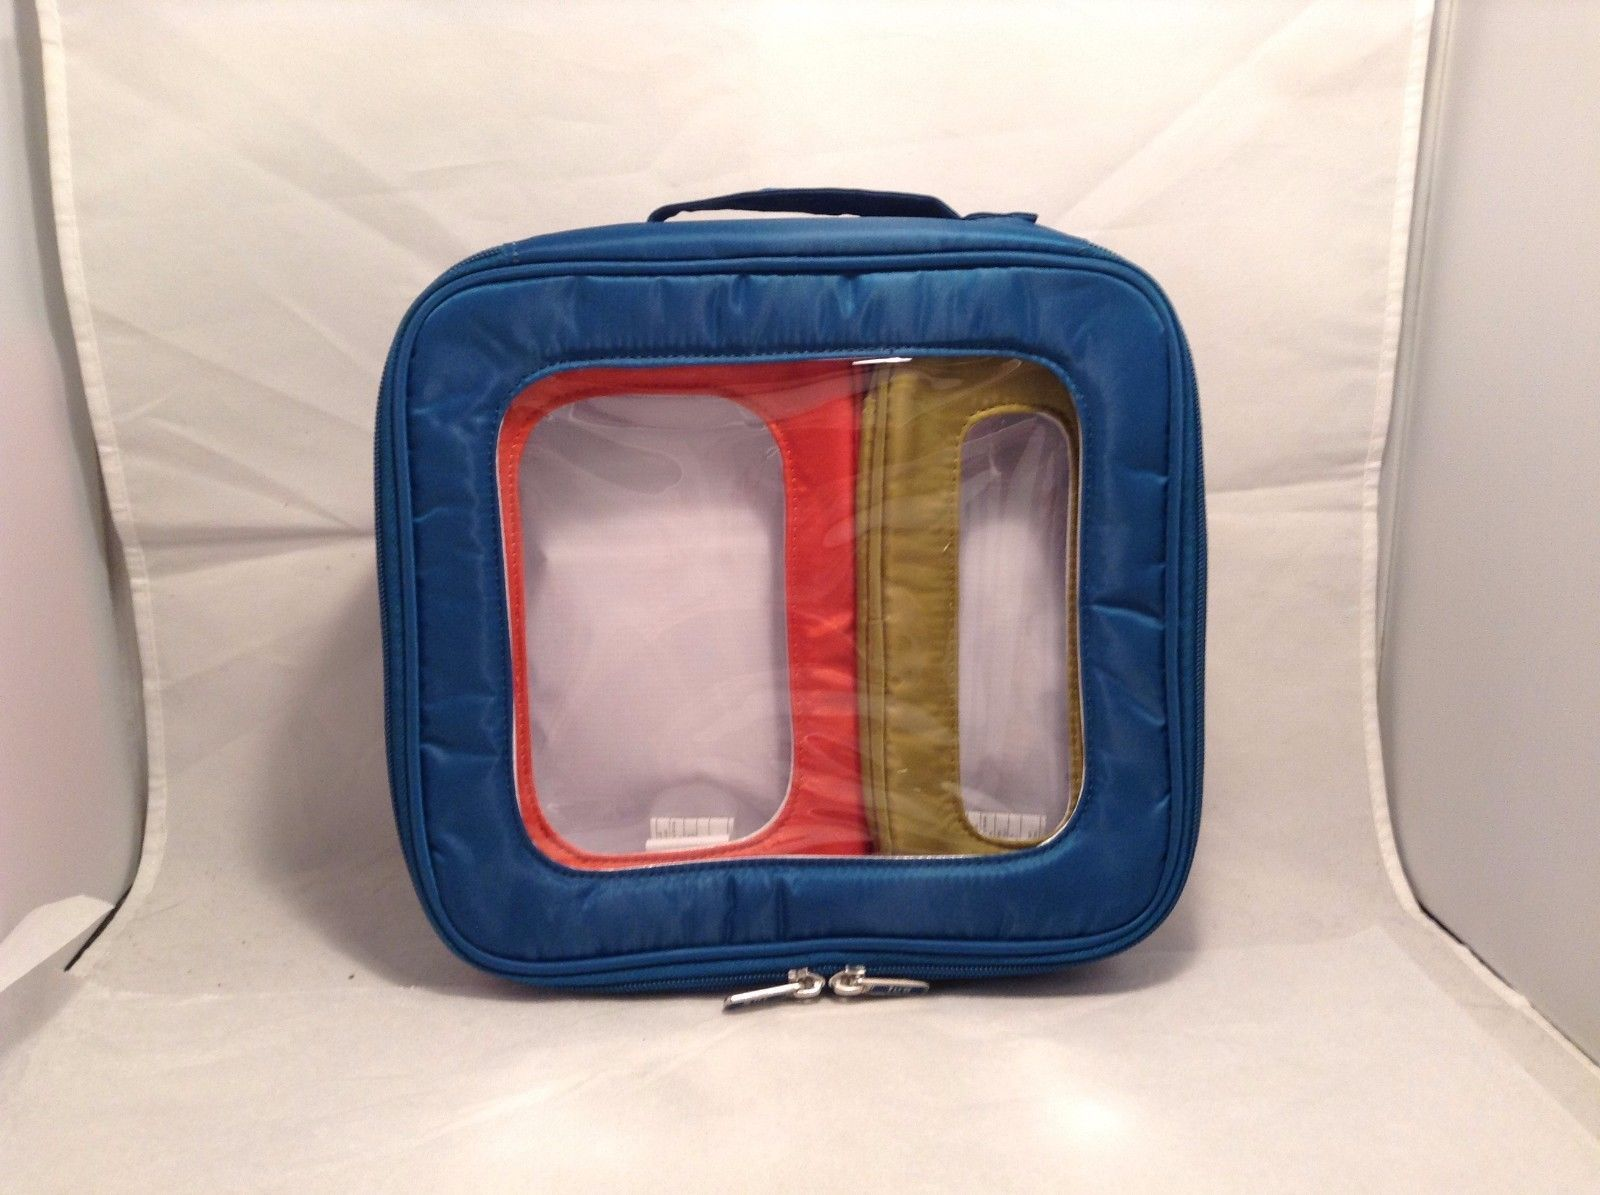 New With Tags NWT Lug Bento Box 3 Piece Storage Container Set Green Orange Blue